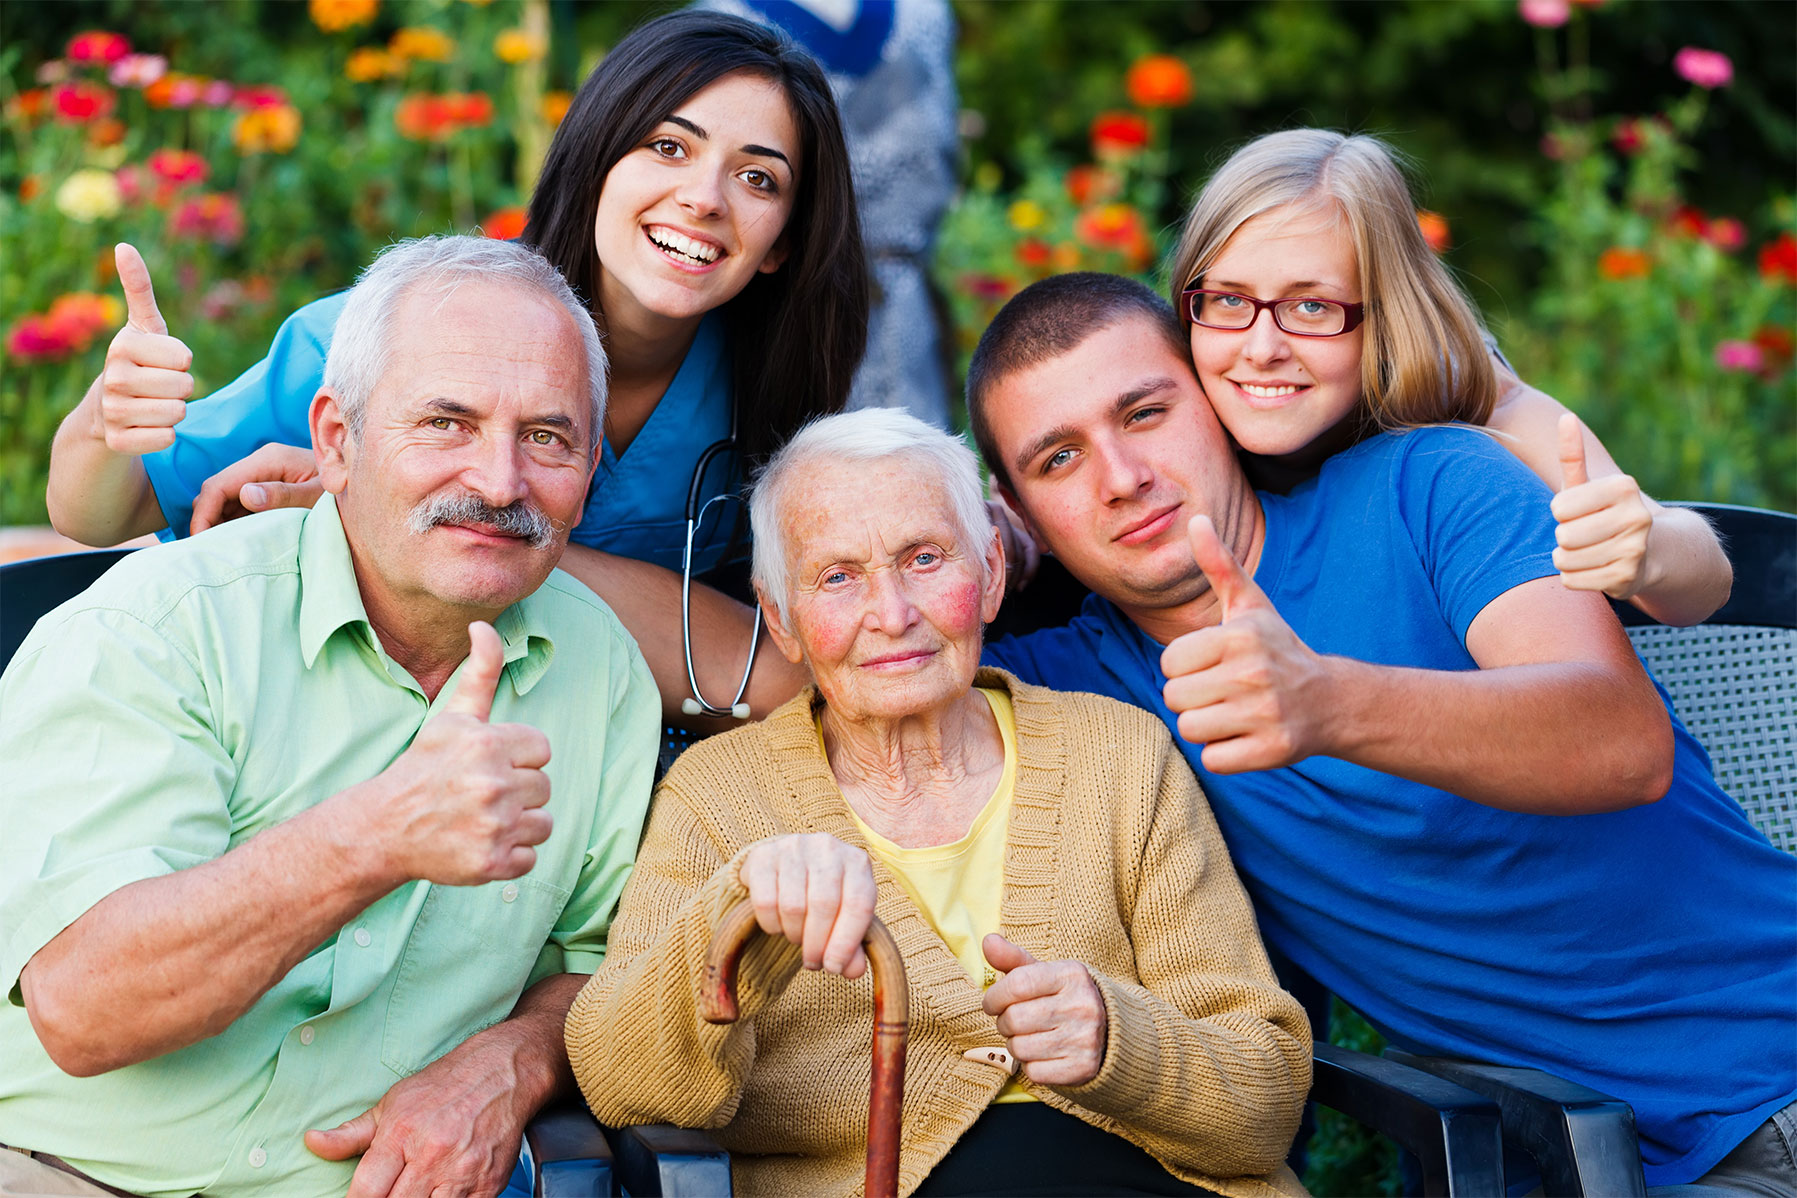 Carer-and-Family-Thumbs-up-low-res.jpg